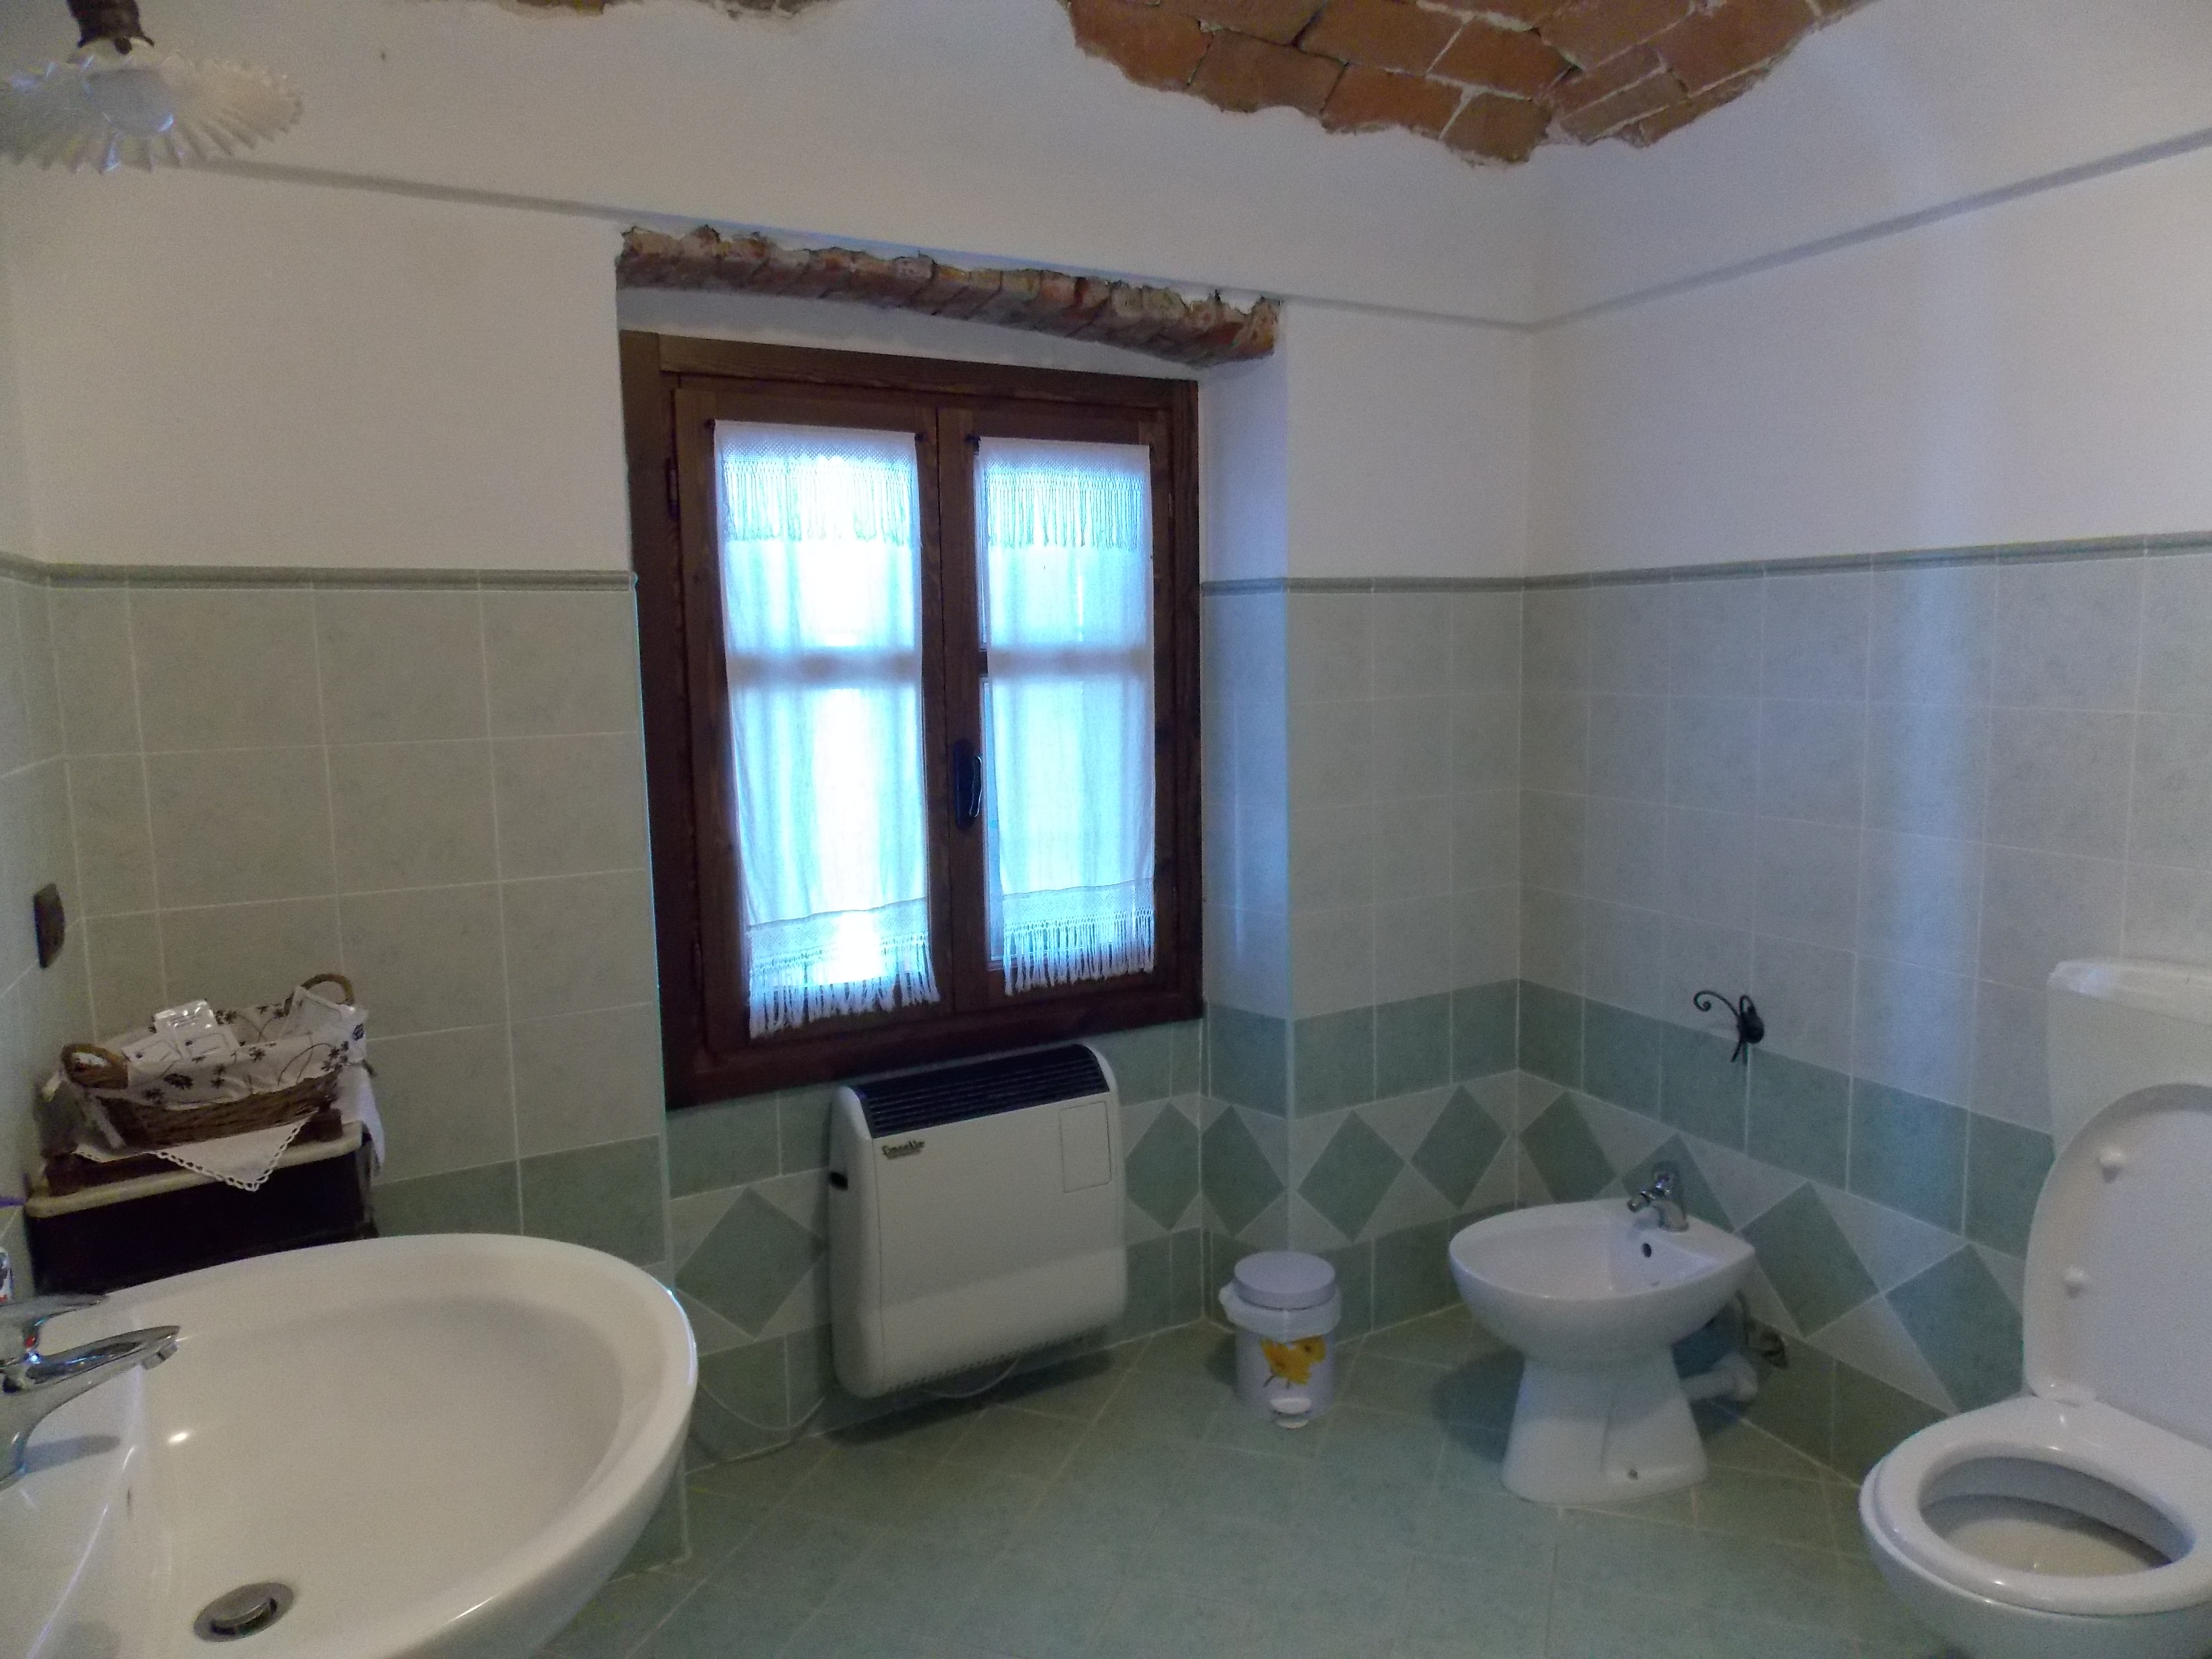 Bed & Breakfast nel Monferrato - Bed & Breakfast - Piemonte (Brusasco -  Torino - TO) ~ Bagno